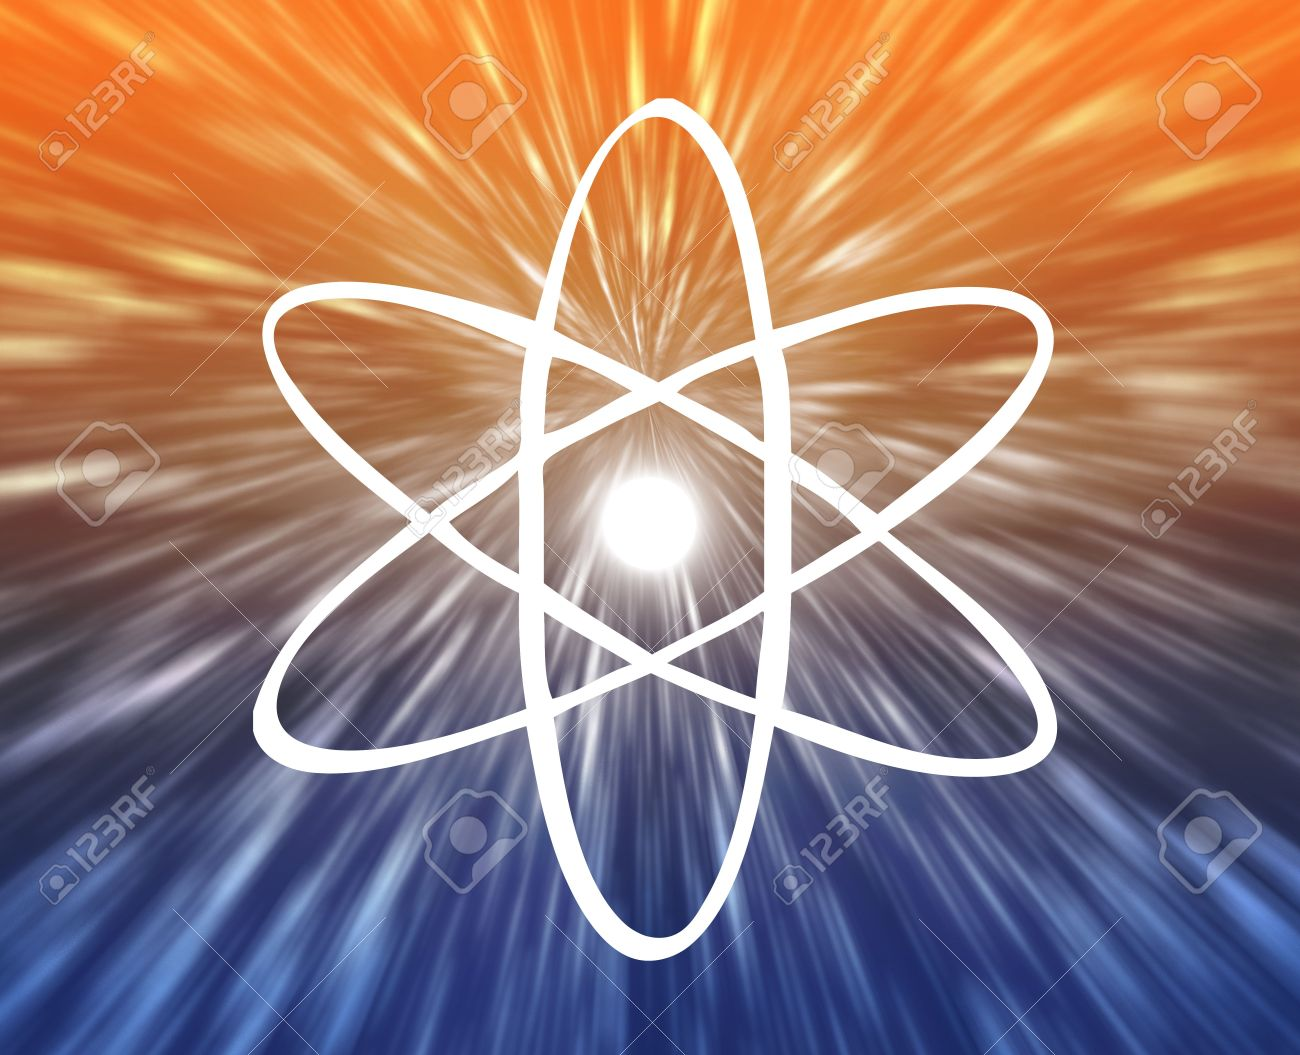 6165126-Atomic-nuclear-symbol-scientific-illustration-of-orbiting-atom-Stock-Illustration